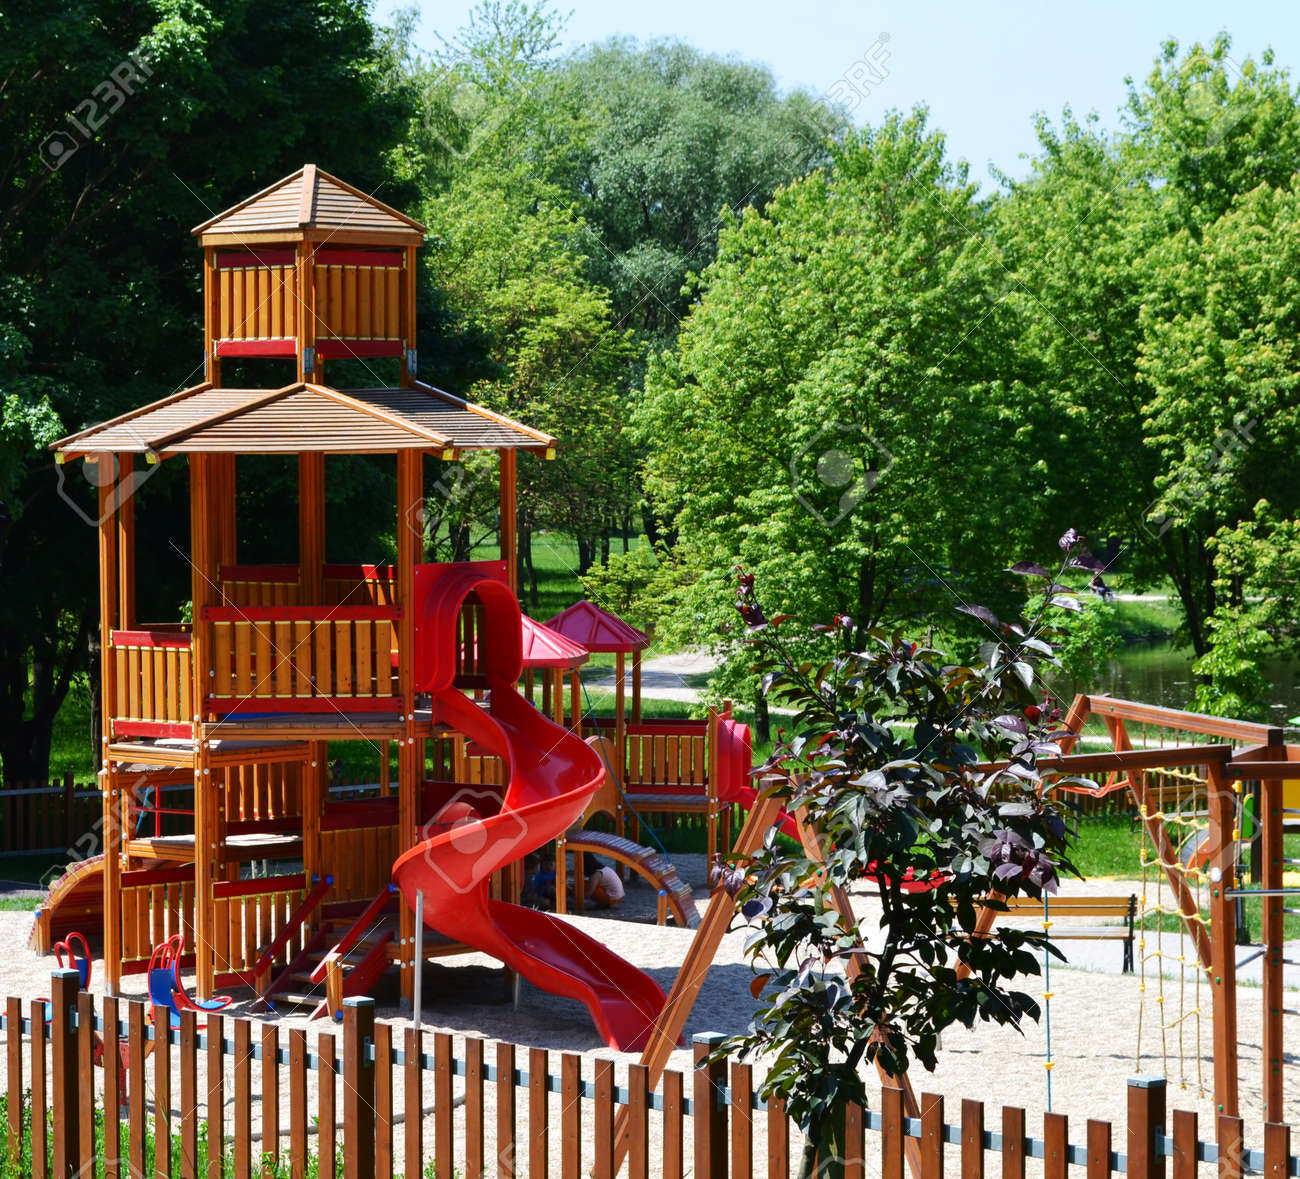 Wooden Castle With Slide On A Modern Playground Situated In